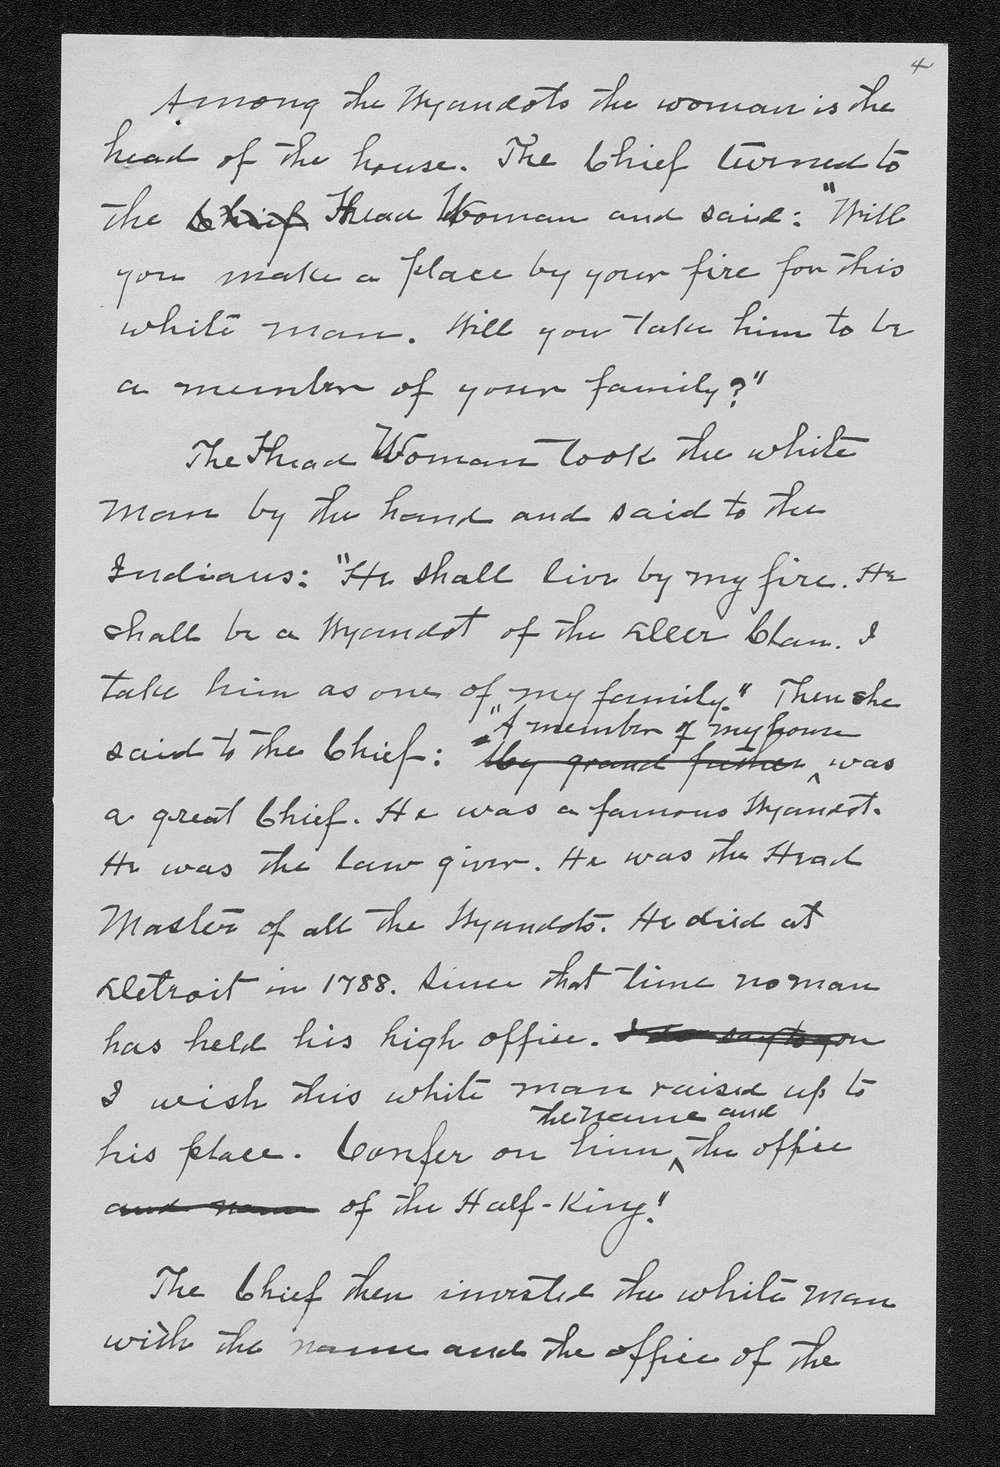 Miss Edna Clyne's manuscript stories and correspondence - 9